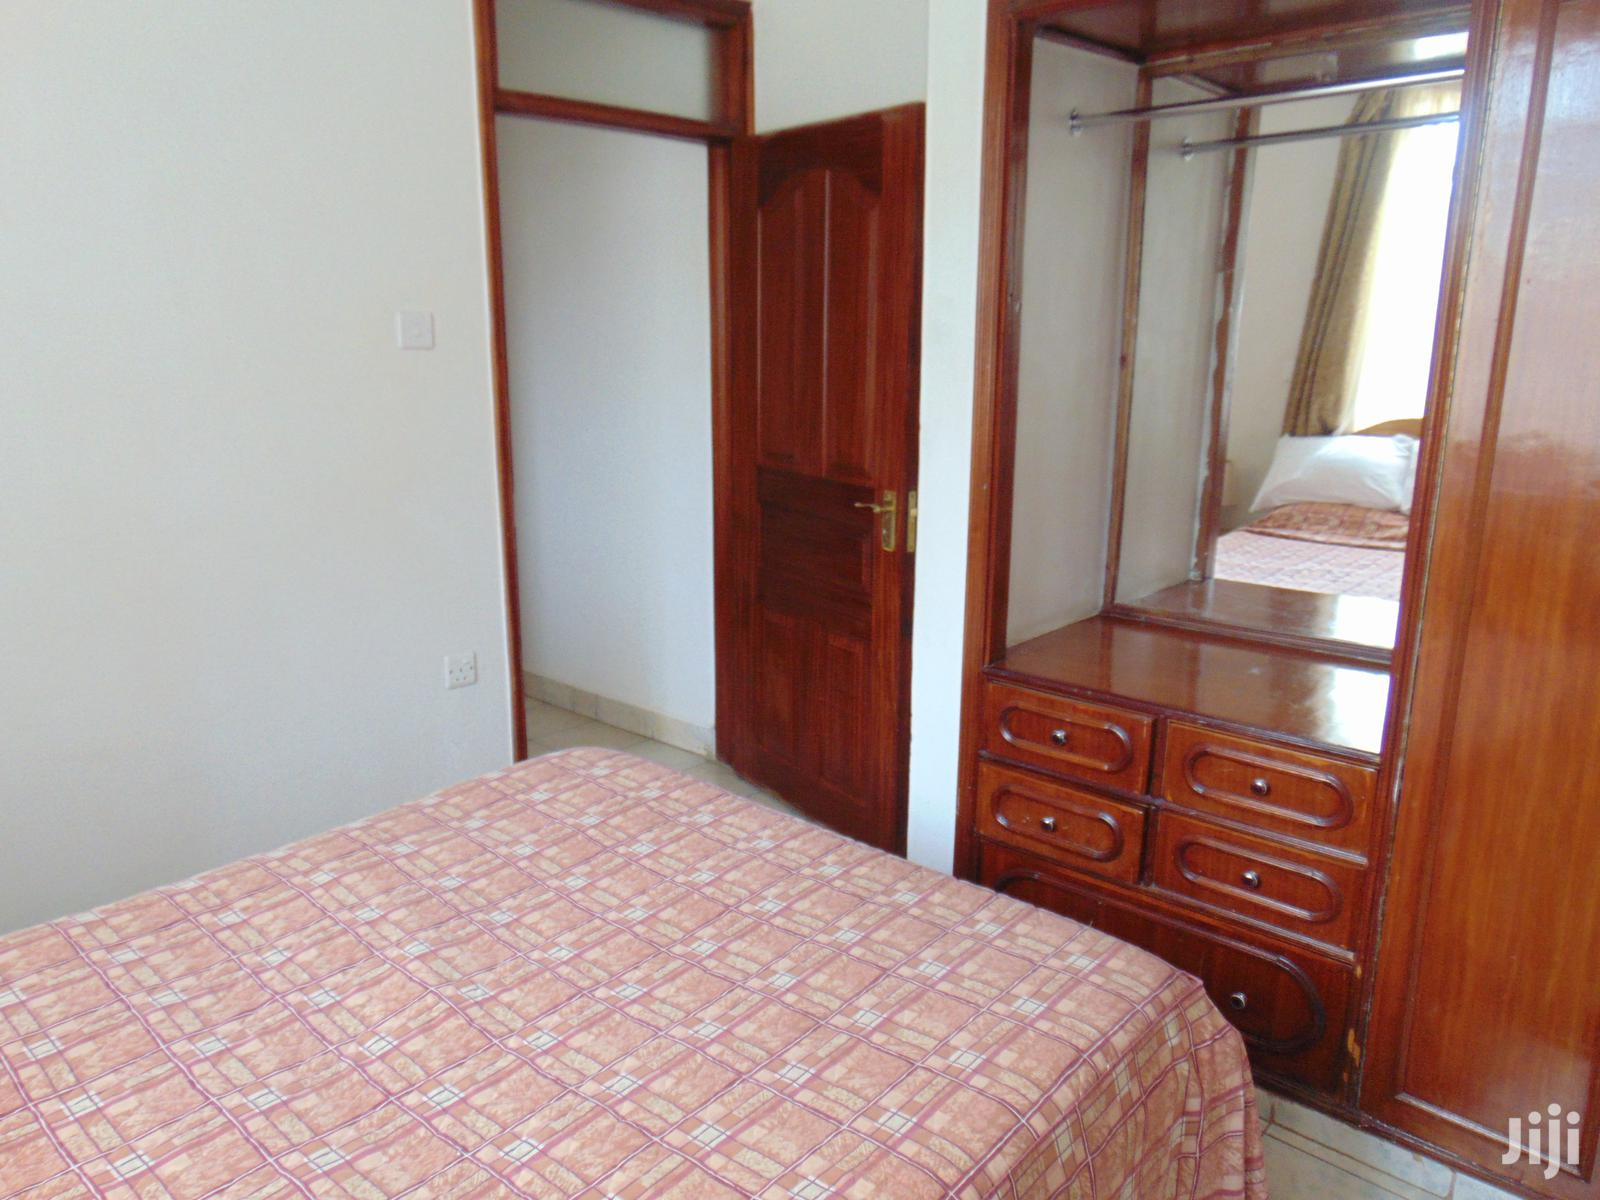 1 Bedroom Furnished Apartment   Houses & Apartments For Rent for sale in Kilimani, Nairobi, Kenya